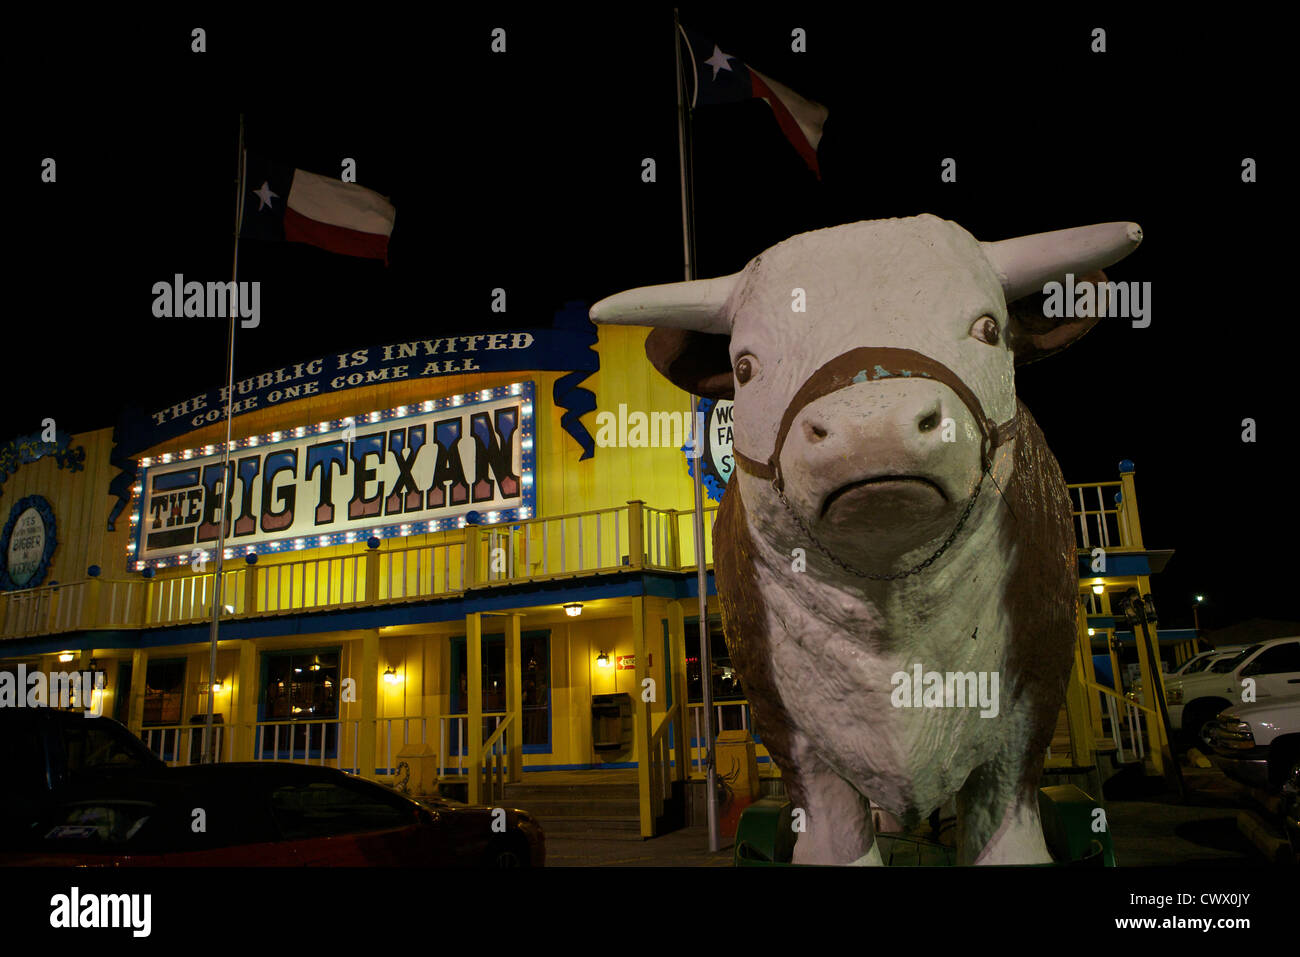 Cow statue in front of the Big Texan restaurant along Route 66 at night - Stock Image